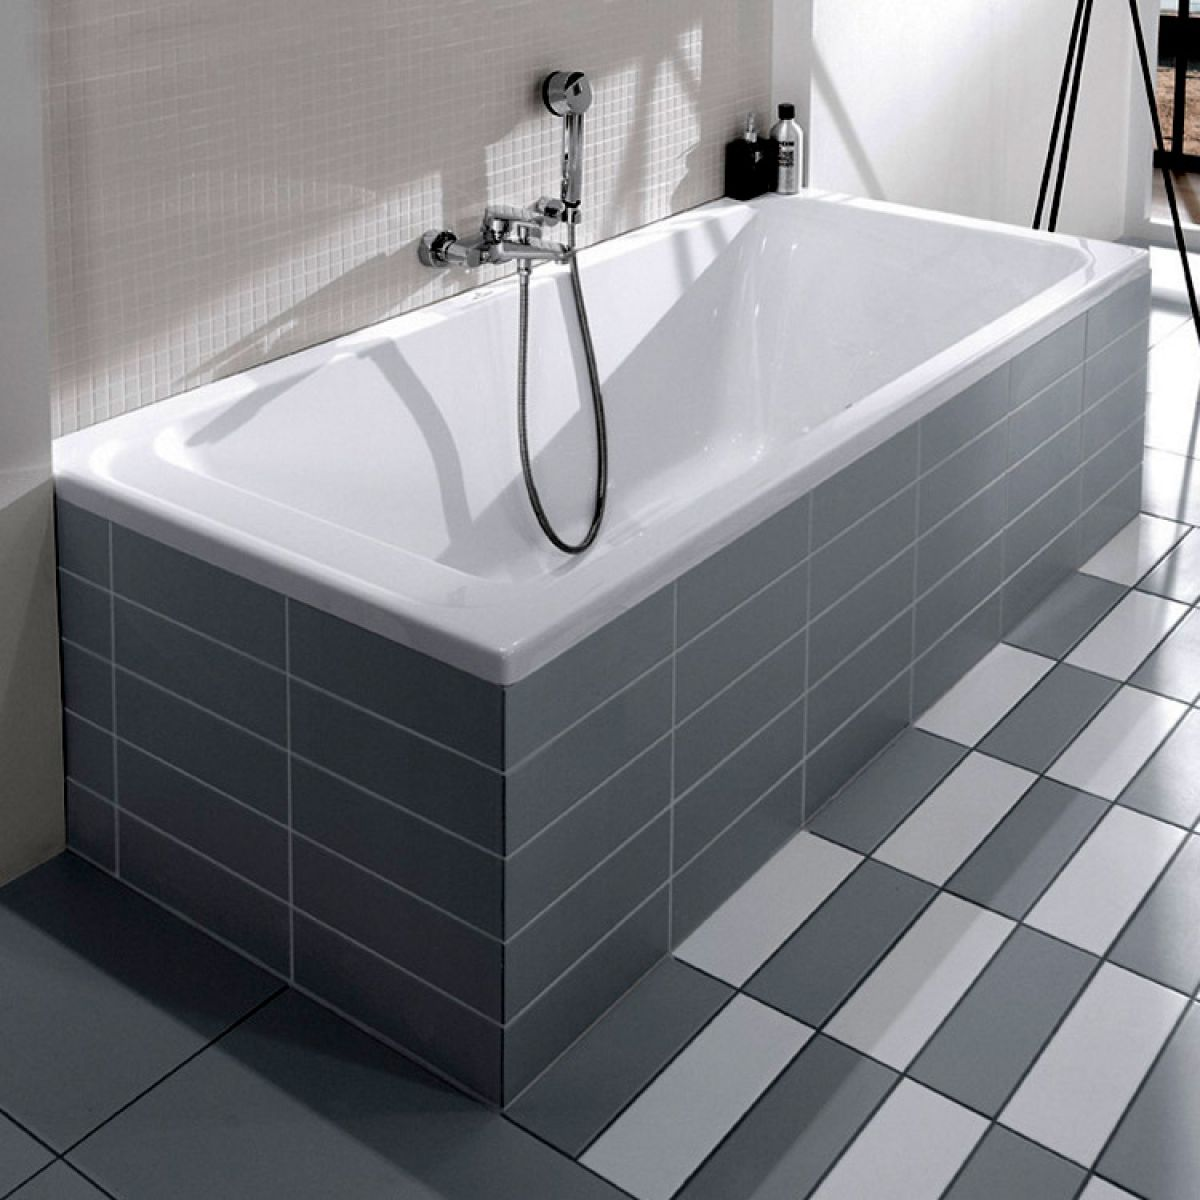 villeroy villeroy boch architectura solo rectangular - Villeroy And Boch Baths